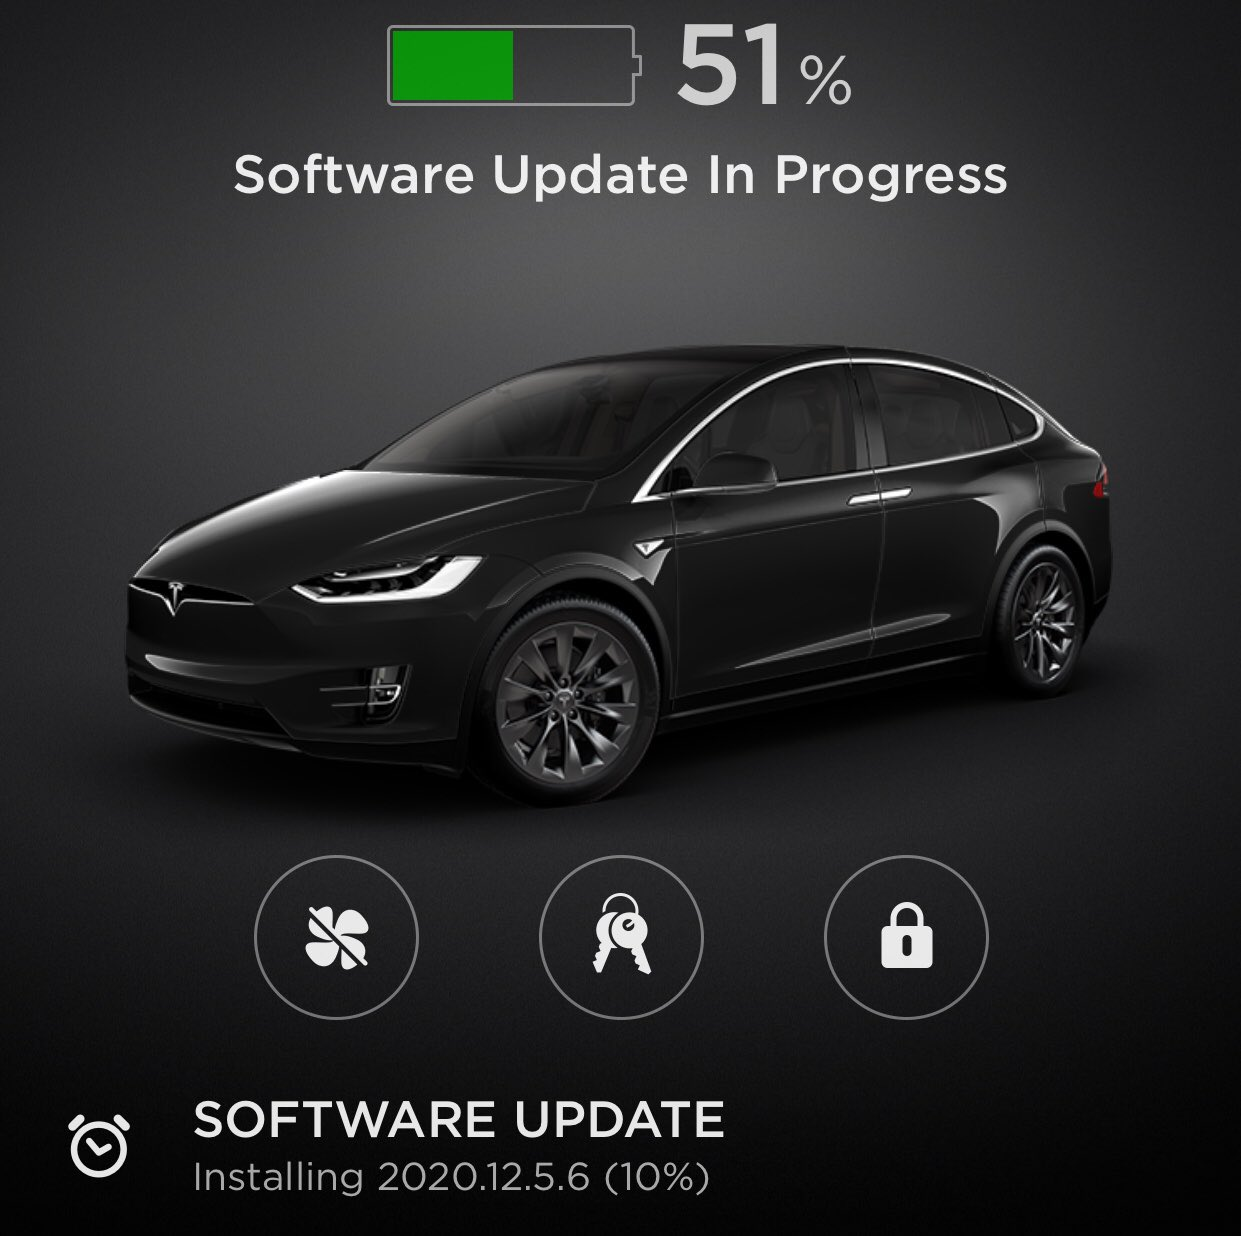 Tesla-2020.12.5.6-OTA-update-traffic-lights